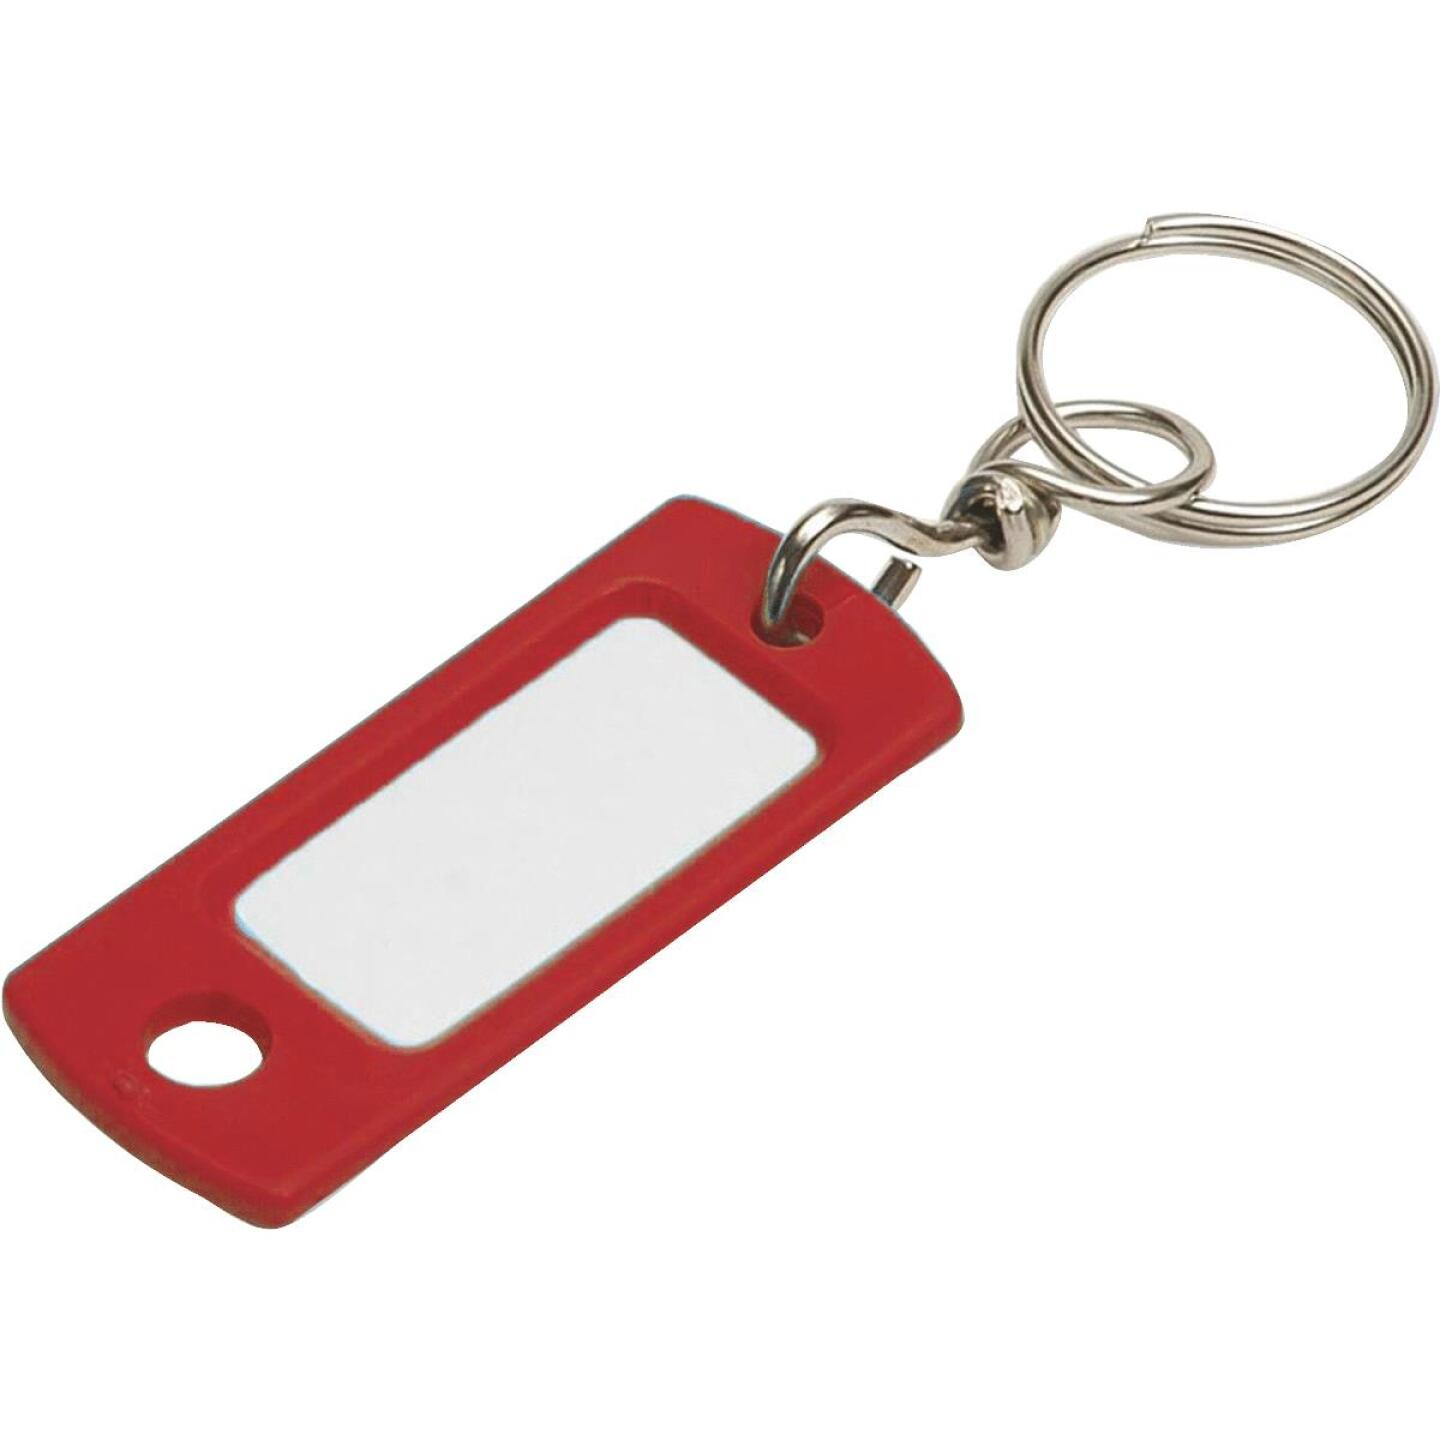 Lucky Line Flexible Swivel Plastic Tag 2 In. I.D. Key Tag, (2-Pack) Image 1